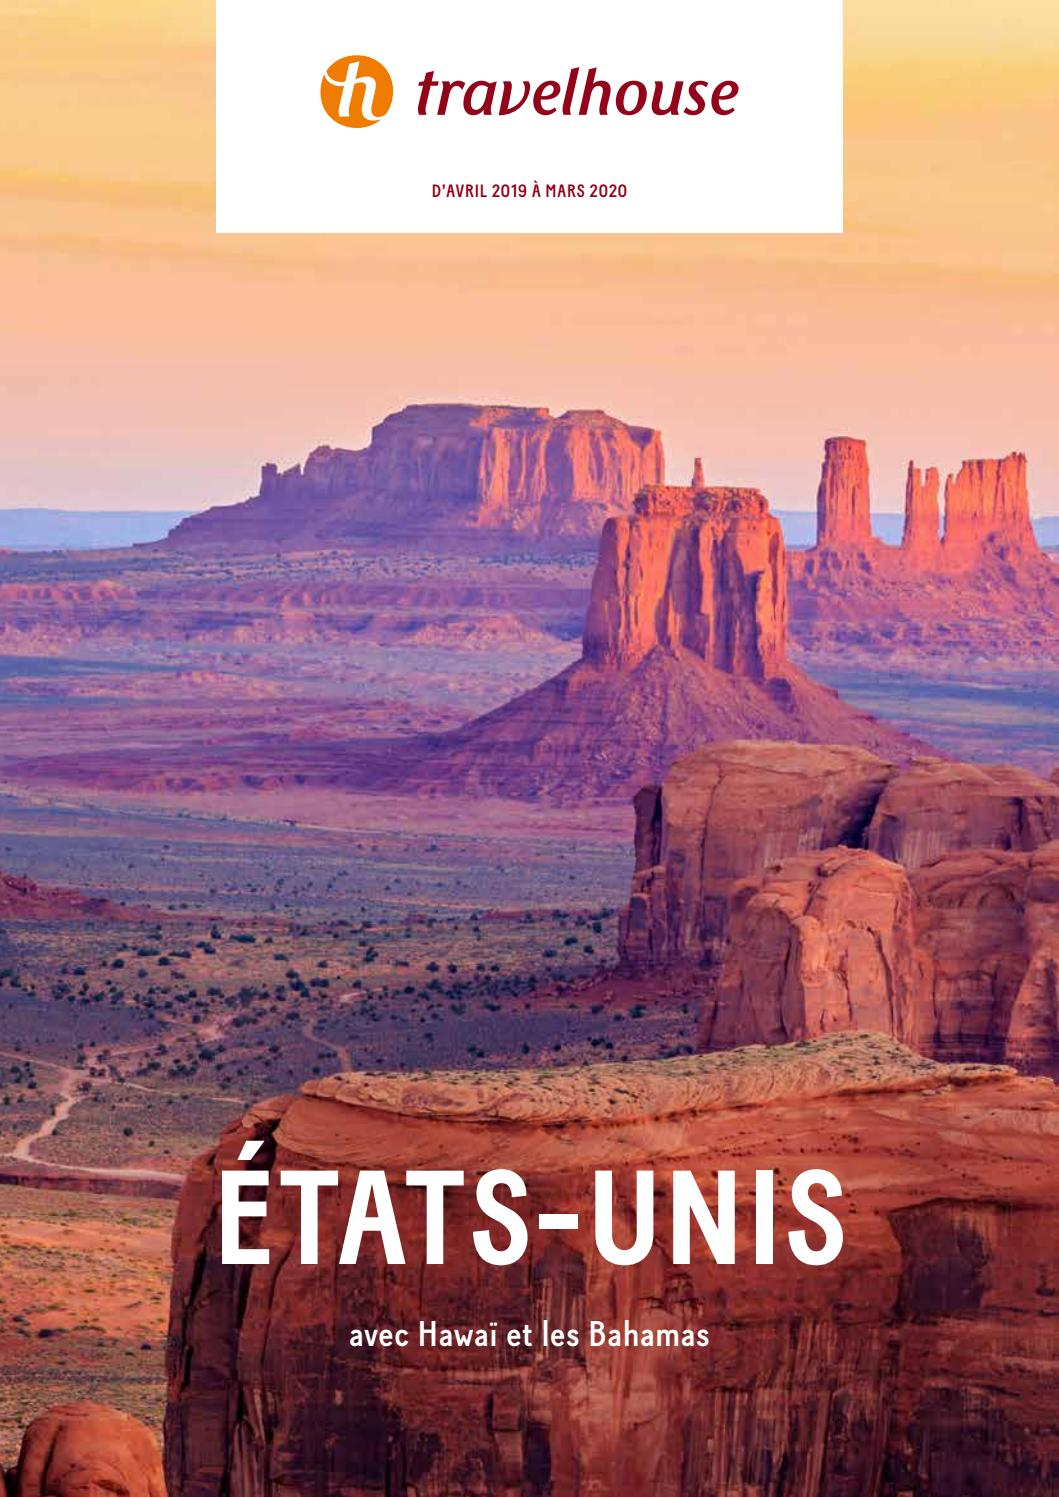 best website 8d2f1 85234 Travelhouse États-Unis – d avril 19 à mars 20 by Hotelplan Suisse (MTCH AG)  - issuu